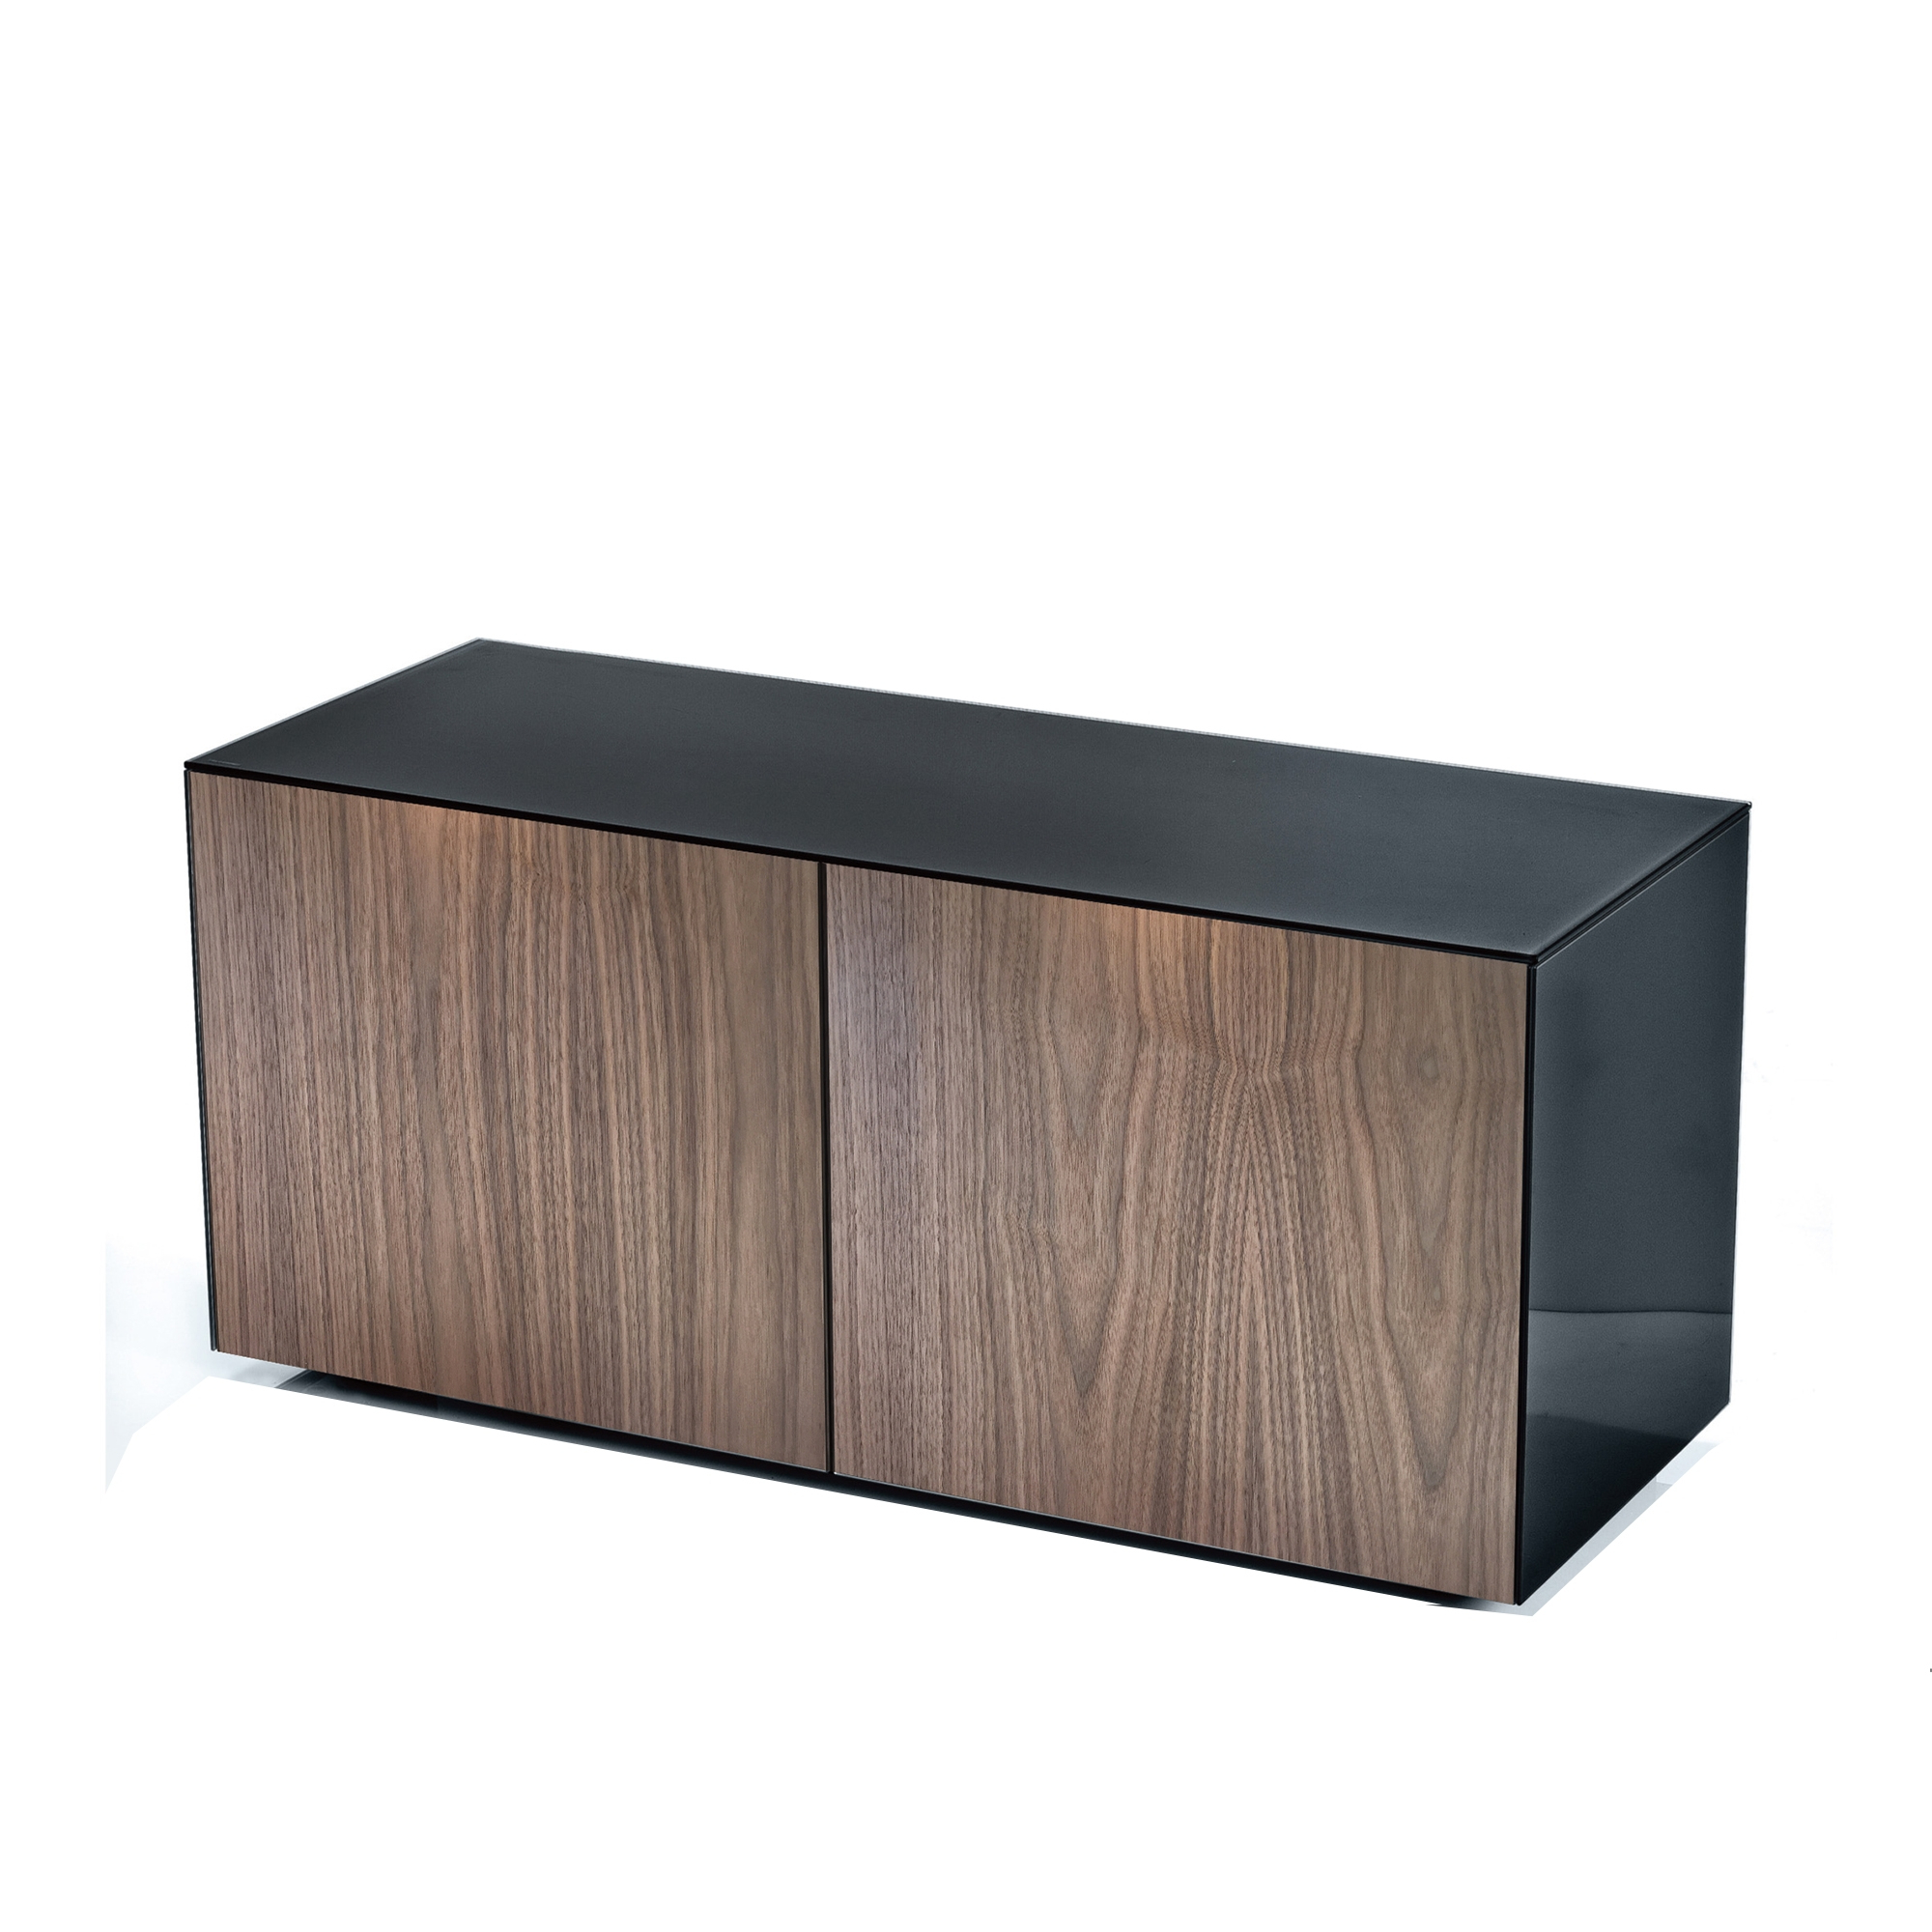 Famous High Gloss Tv Unit With Wireless Phone Charging In Black – Tv & Hifi With Regard To Tv Units Black (Gallery 16 of 20)